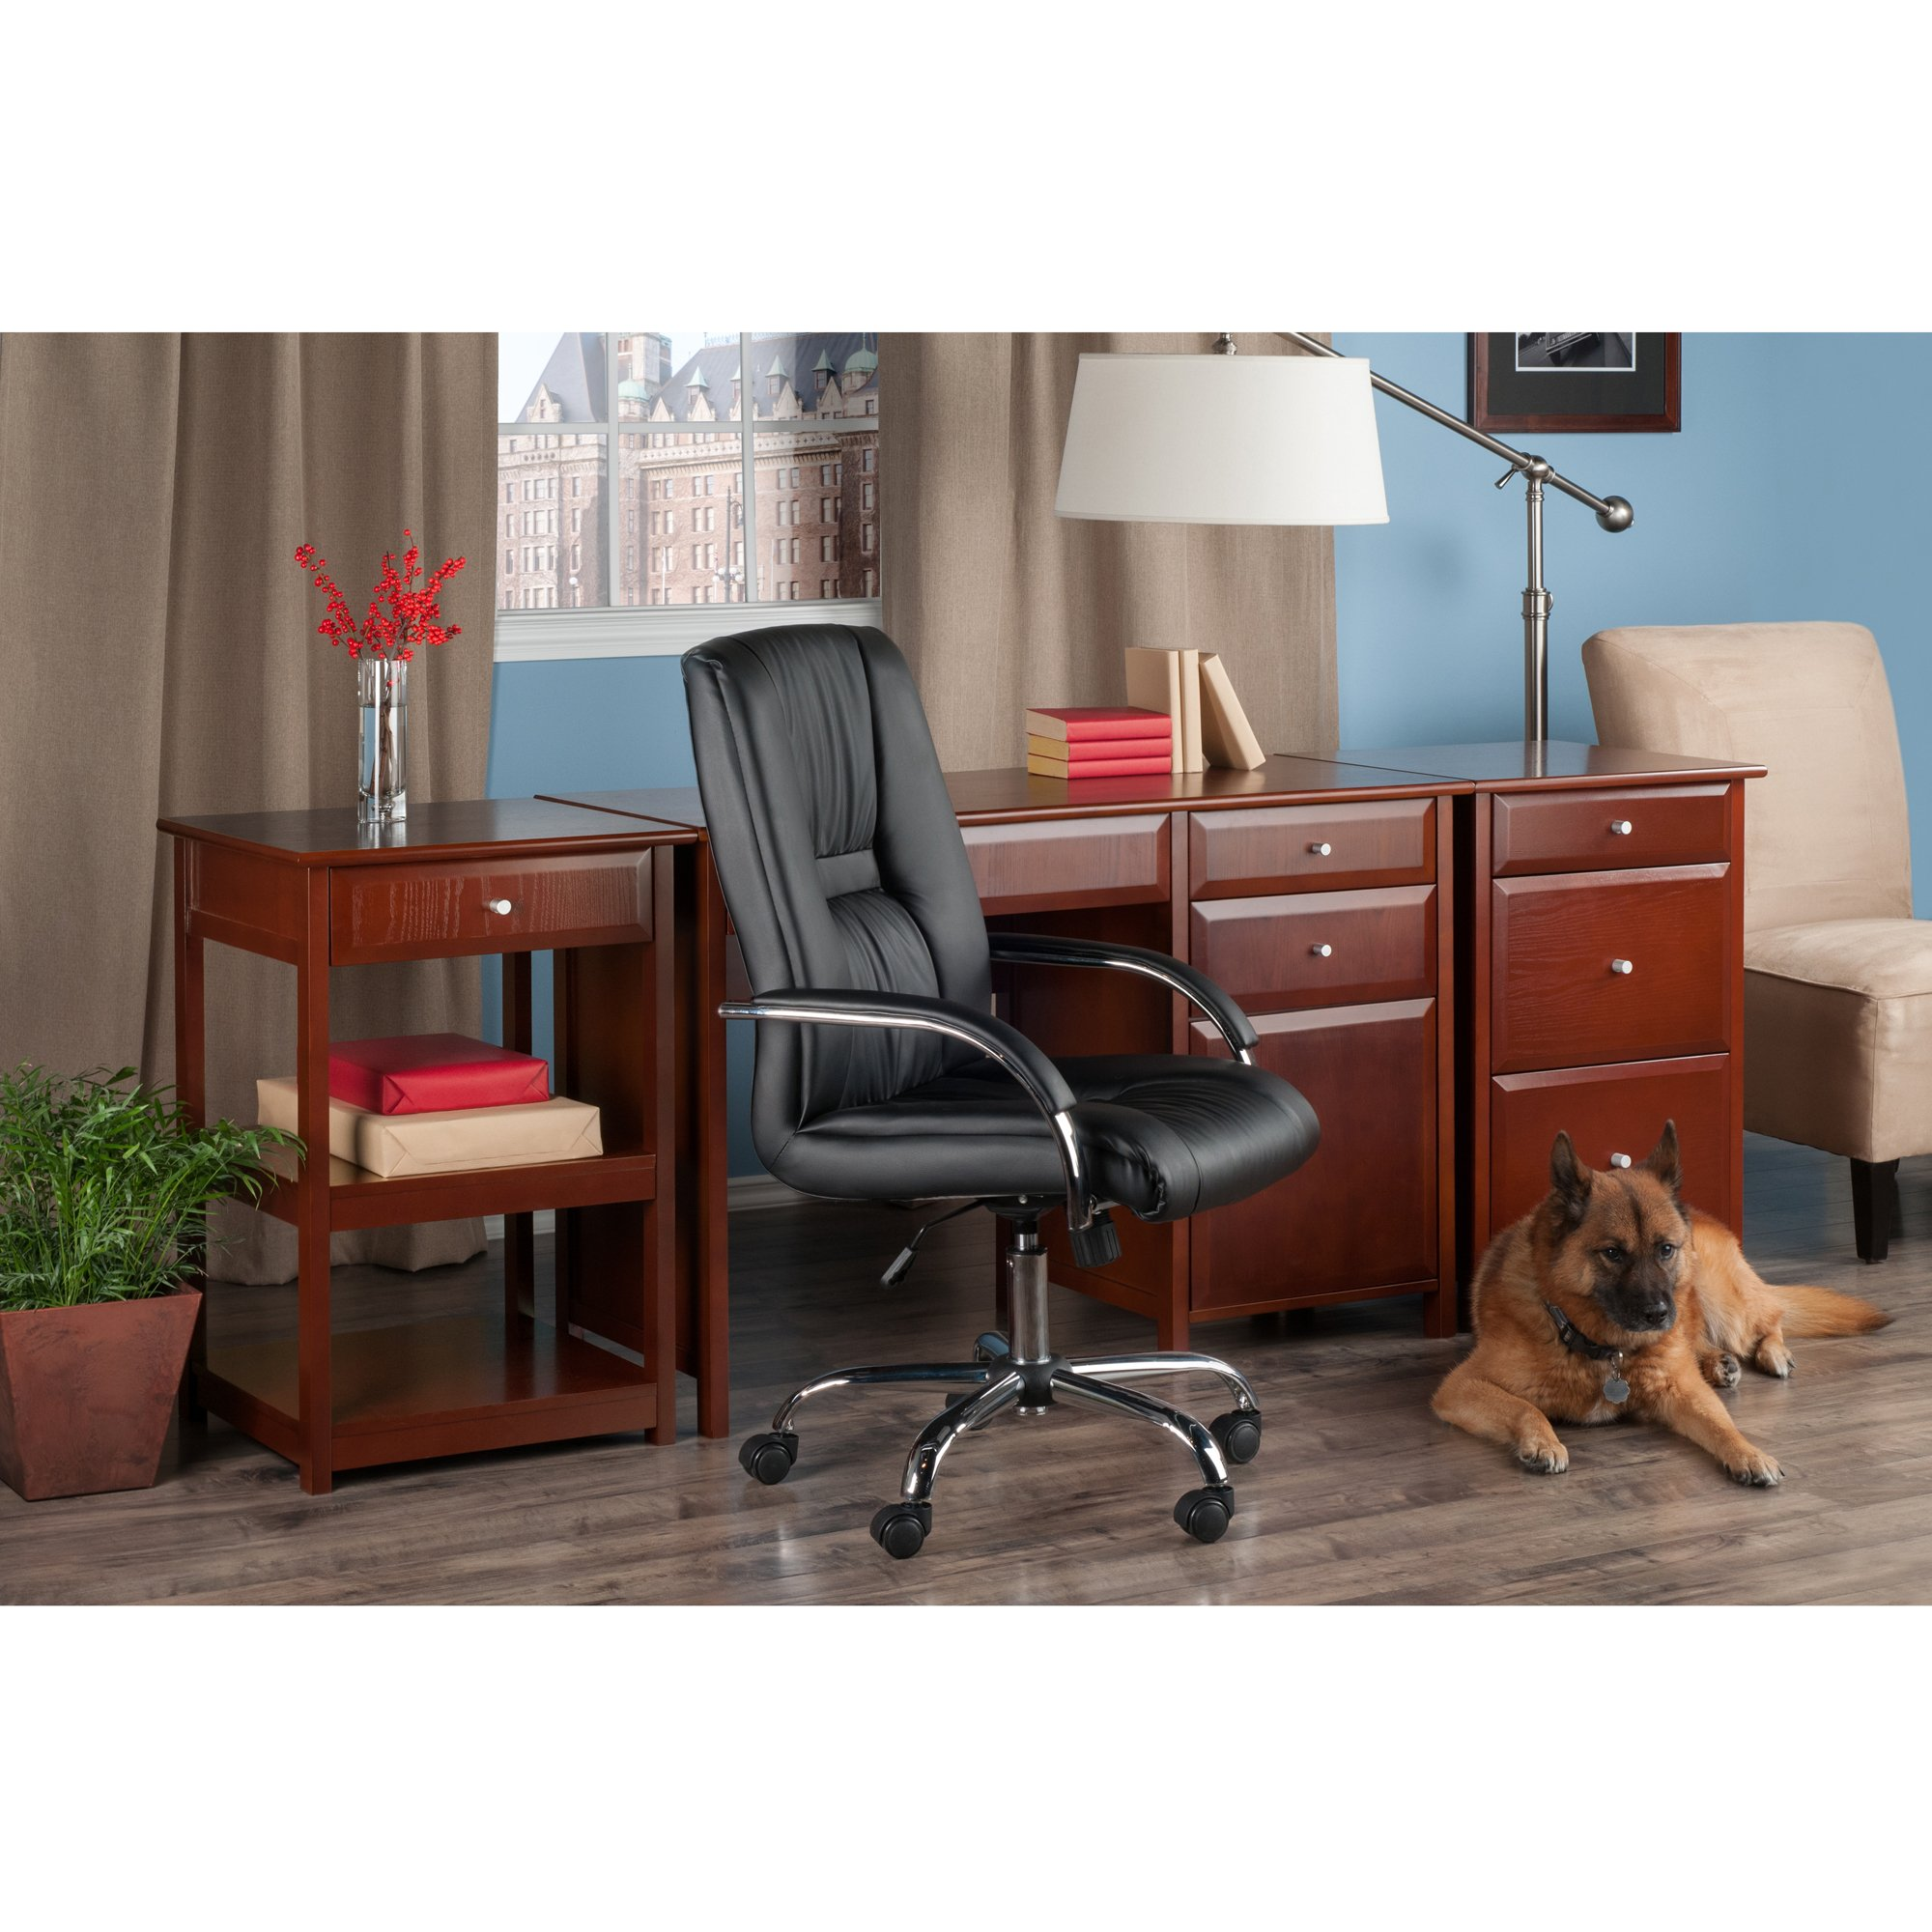 Winsome Wood 94321-WW Delta Home Office, Walnut by Winsome Wood (Image #7)